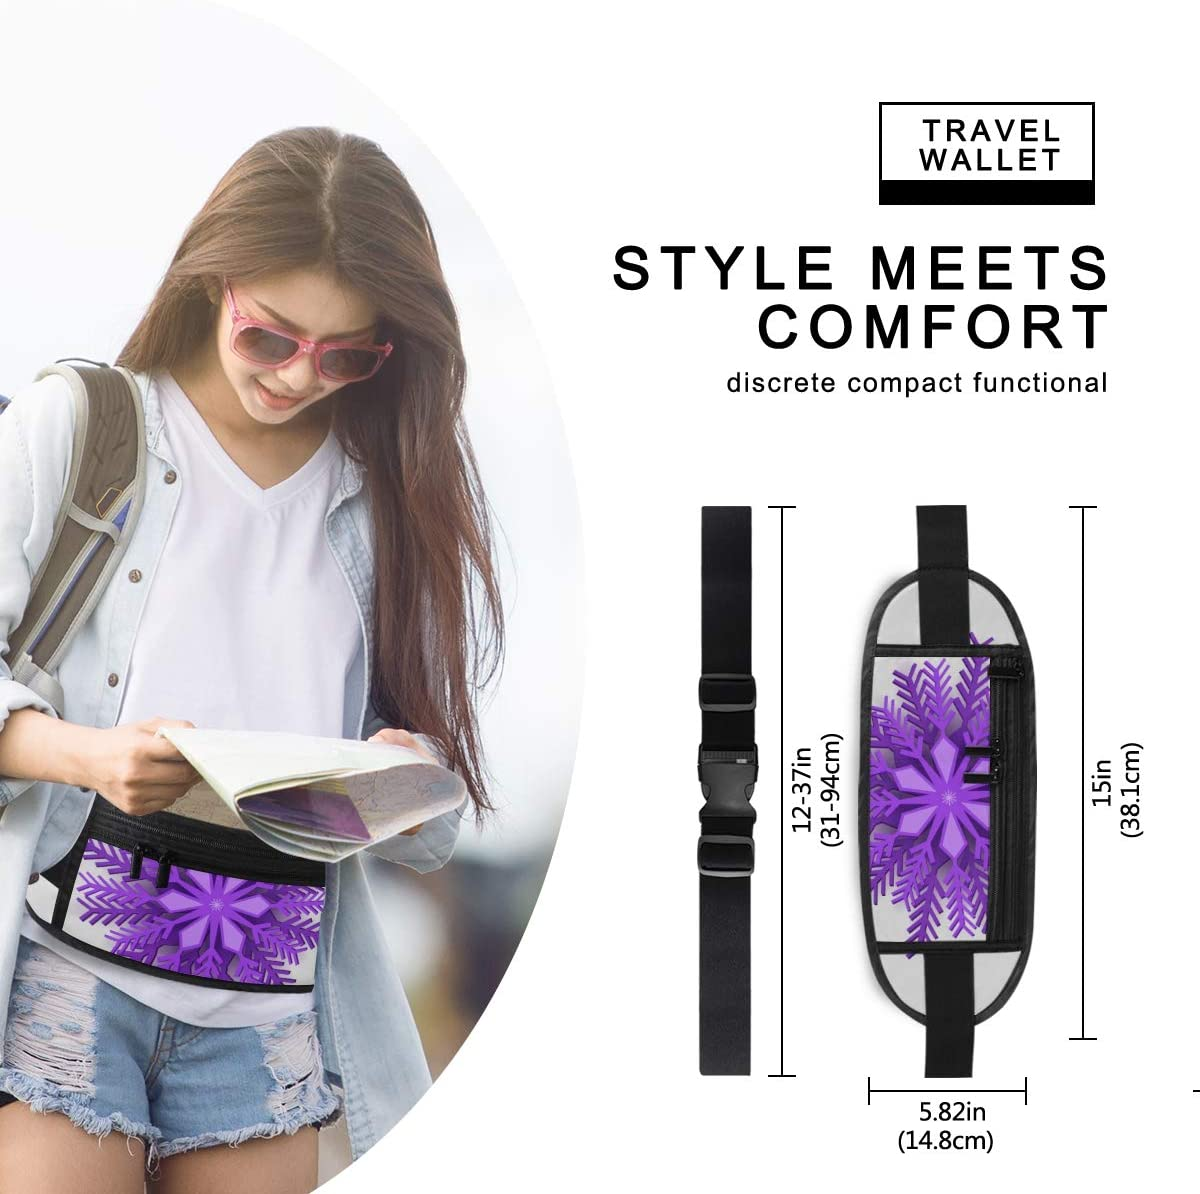 Travel Waist Pack,travel Pocket With Adjustable Belt Violet Christmas Origami Snowflake Design Paper Running Lumbar Pack For Travel Outdoor Sports